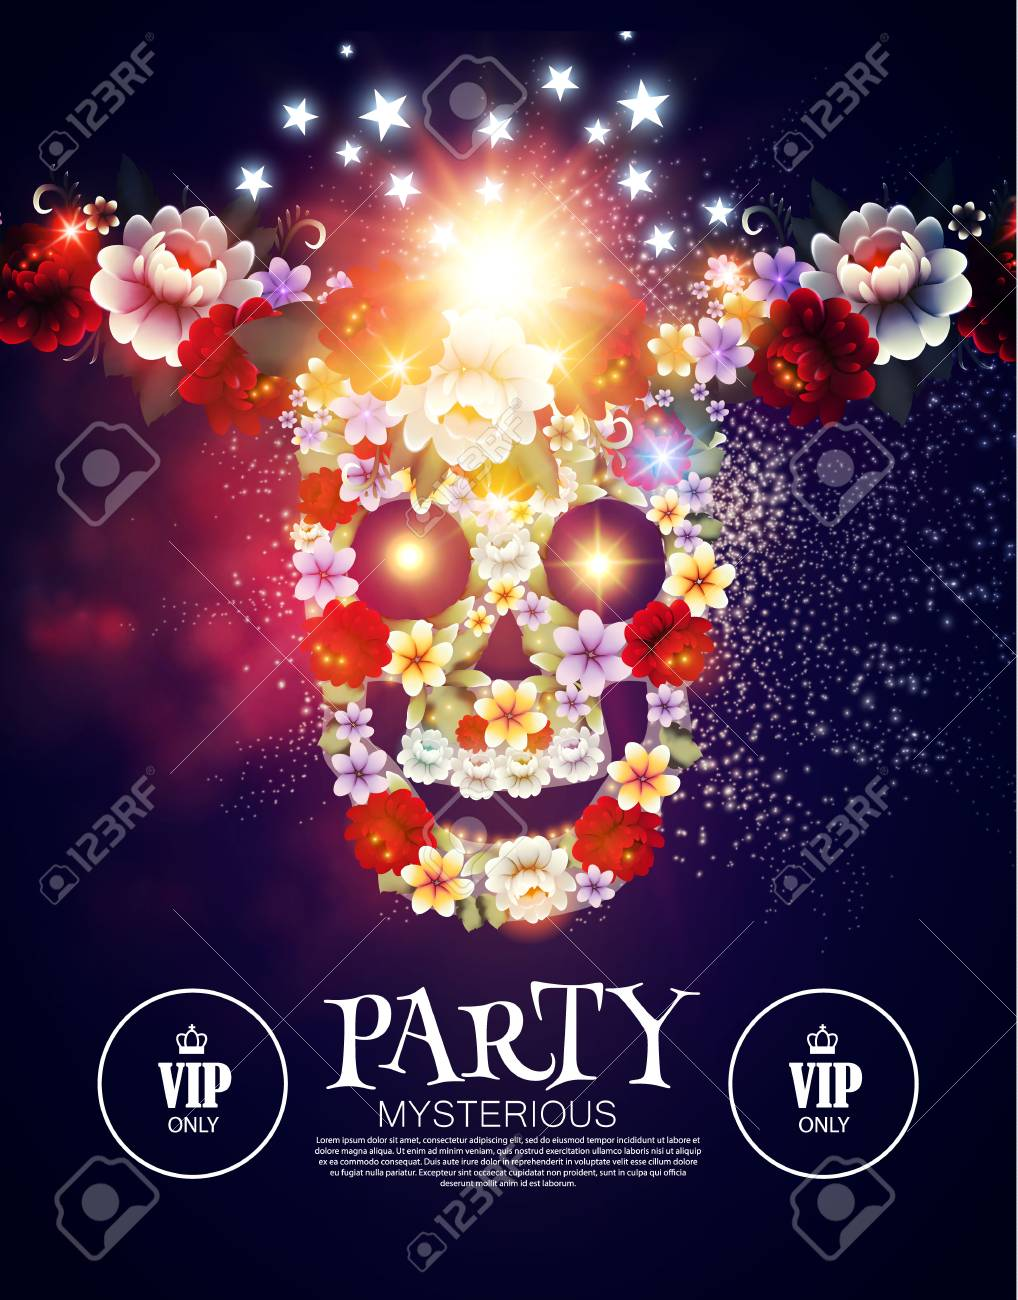 Dia De Los Muertos Mysterious Party Day Of The Dead Background With Traditional Mexican